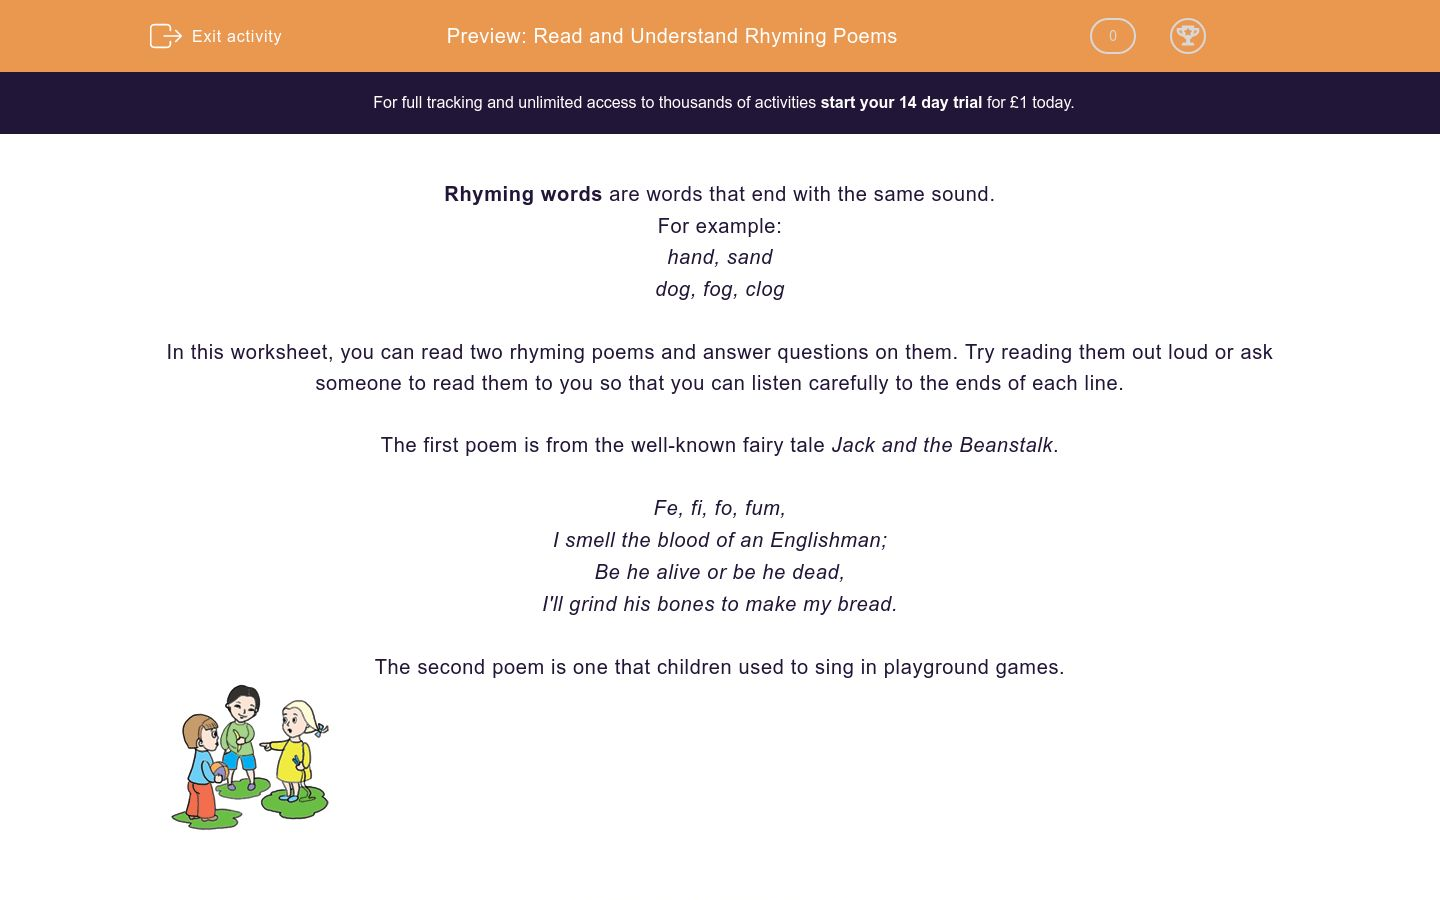 'Read and Understand Rhyming Poems' worksheet